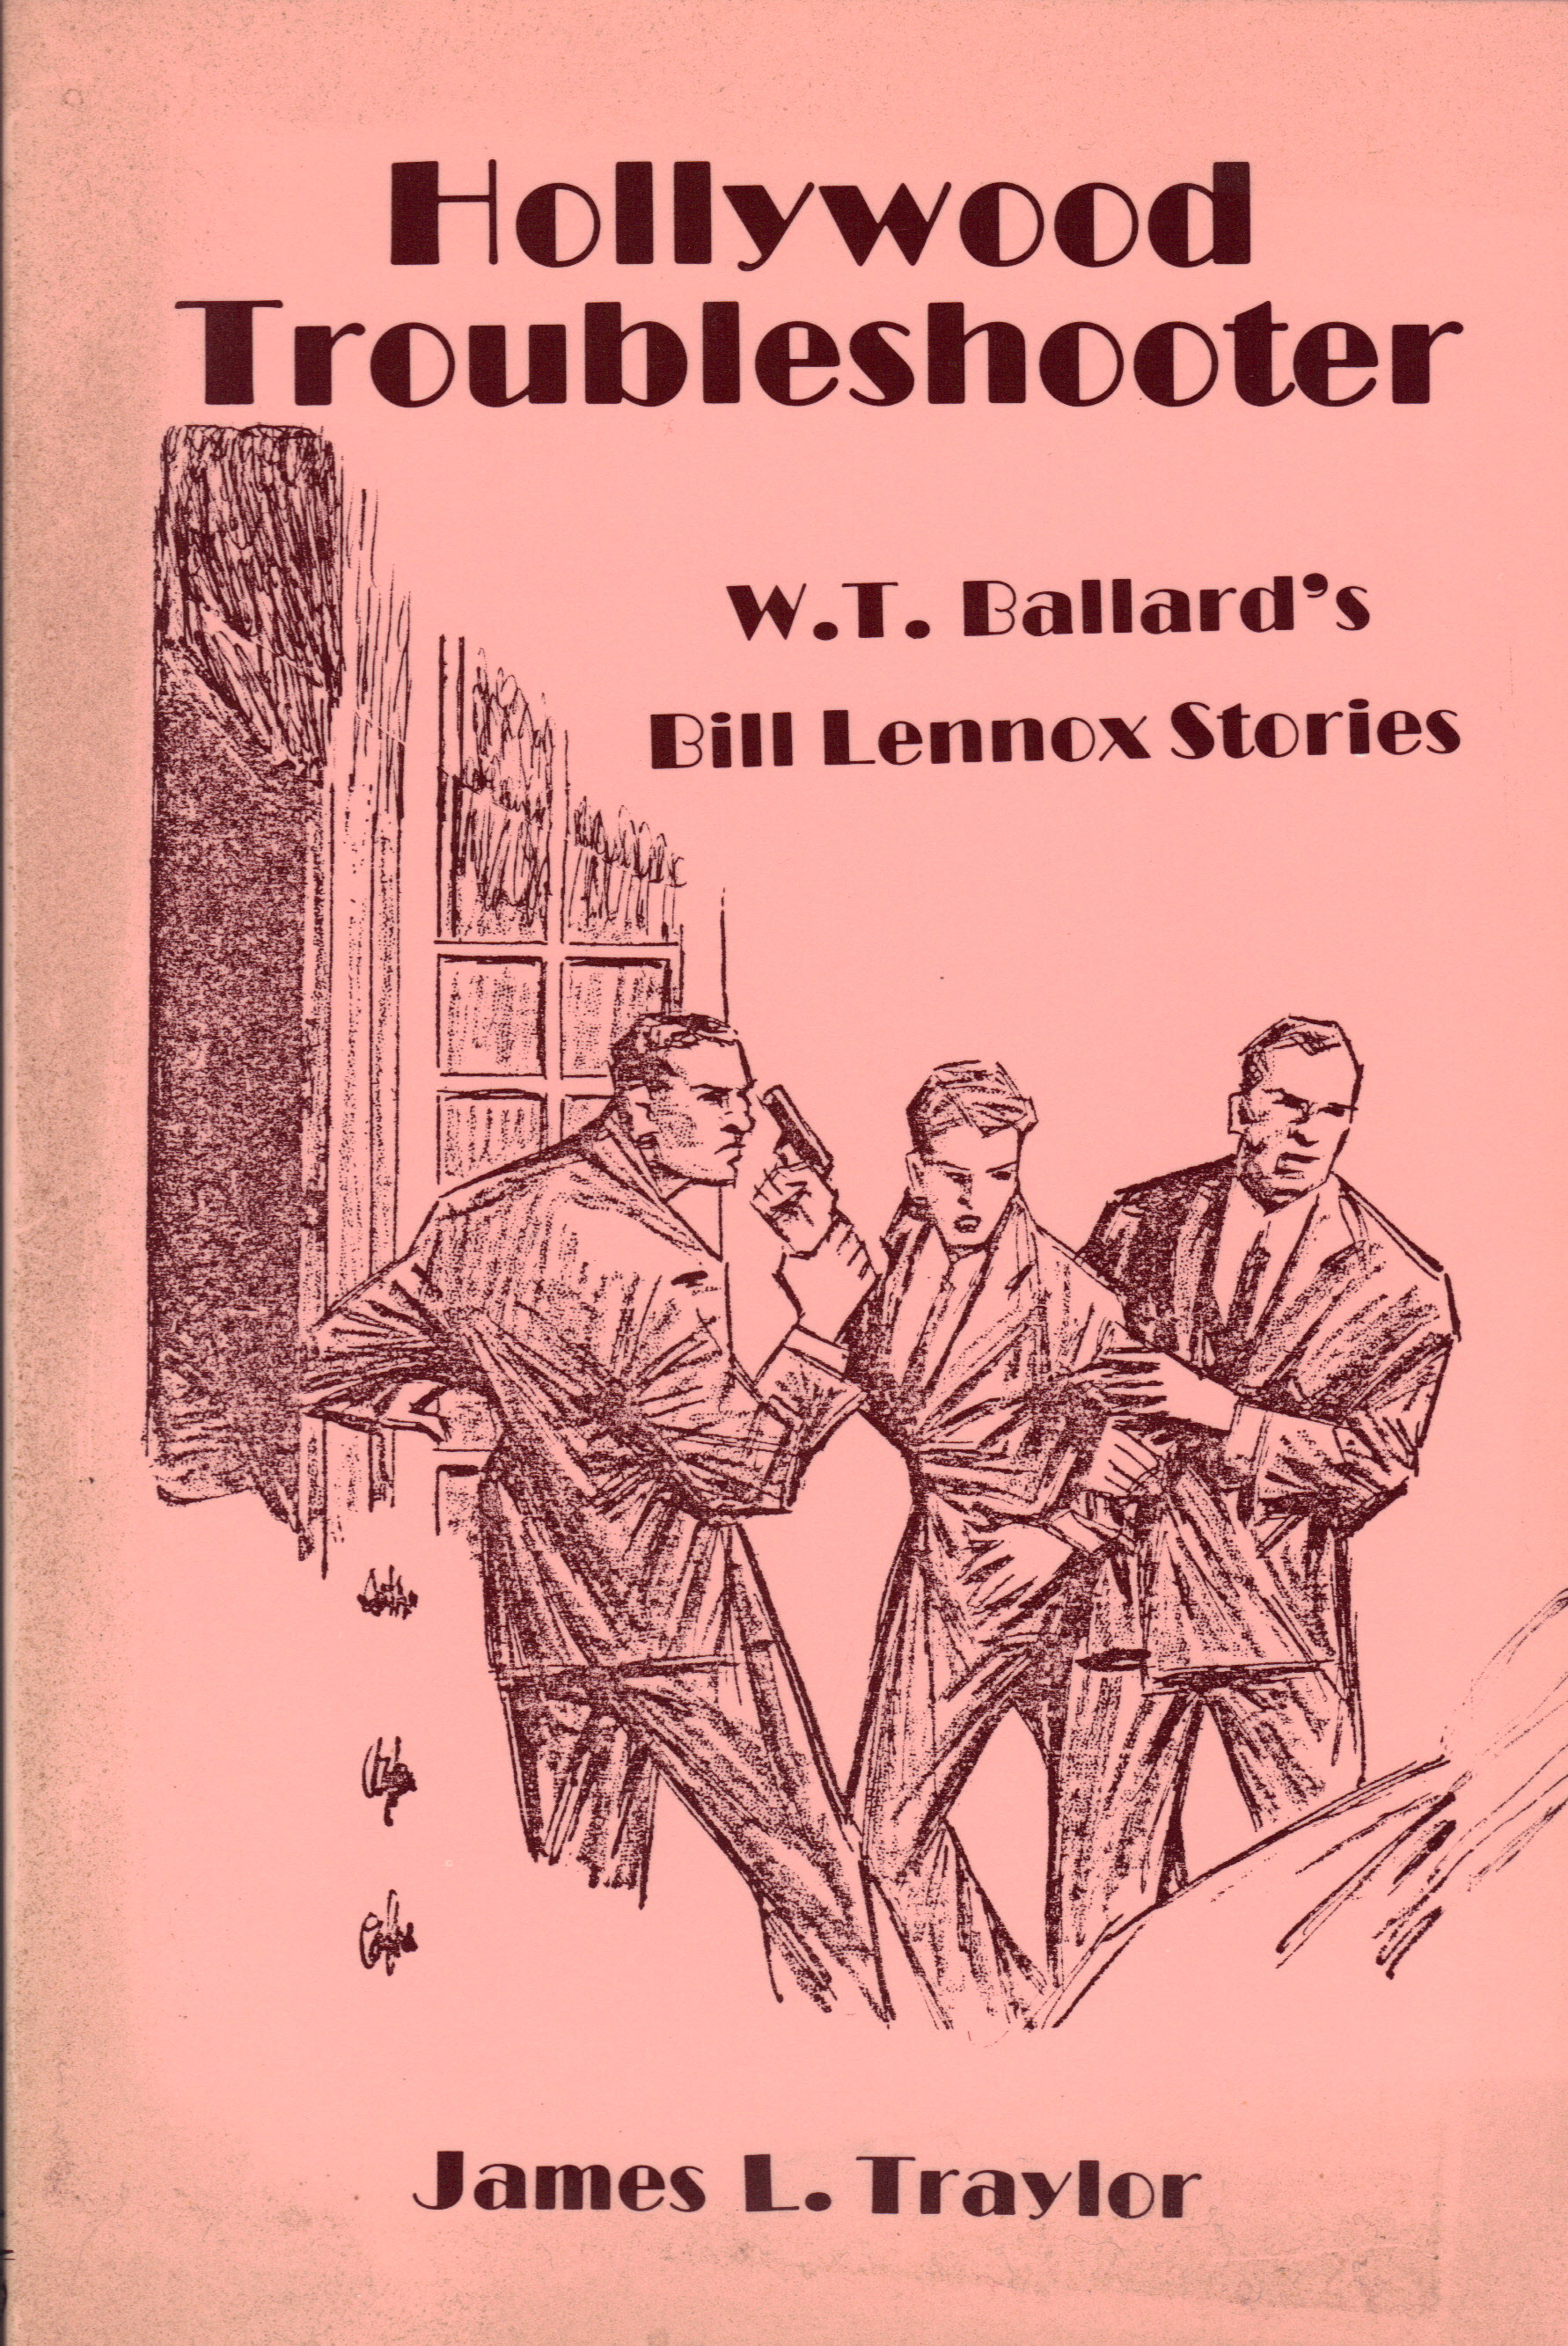 Image for HOLLYWOOD TROUBLESHOOTER ~ W. T. Ballard's Bill Lennox Stories